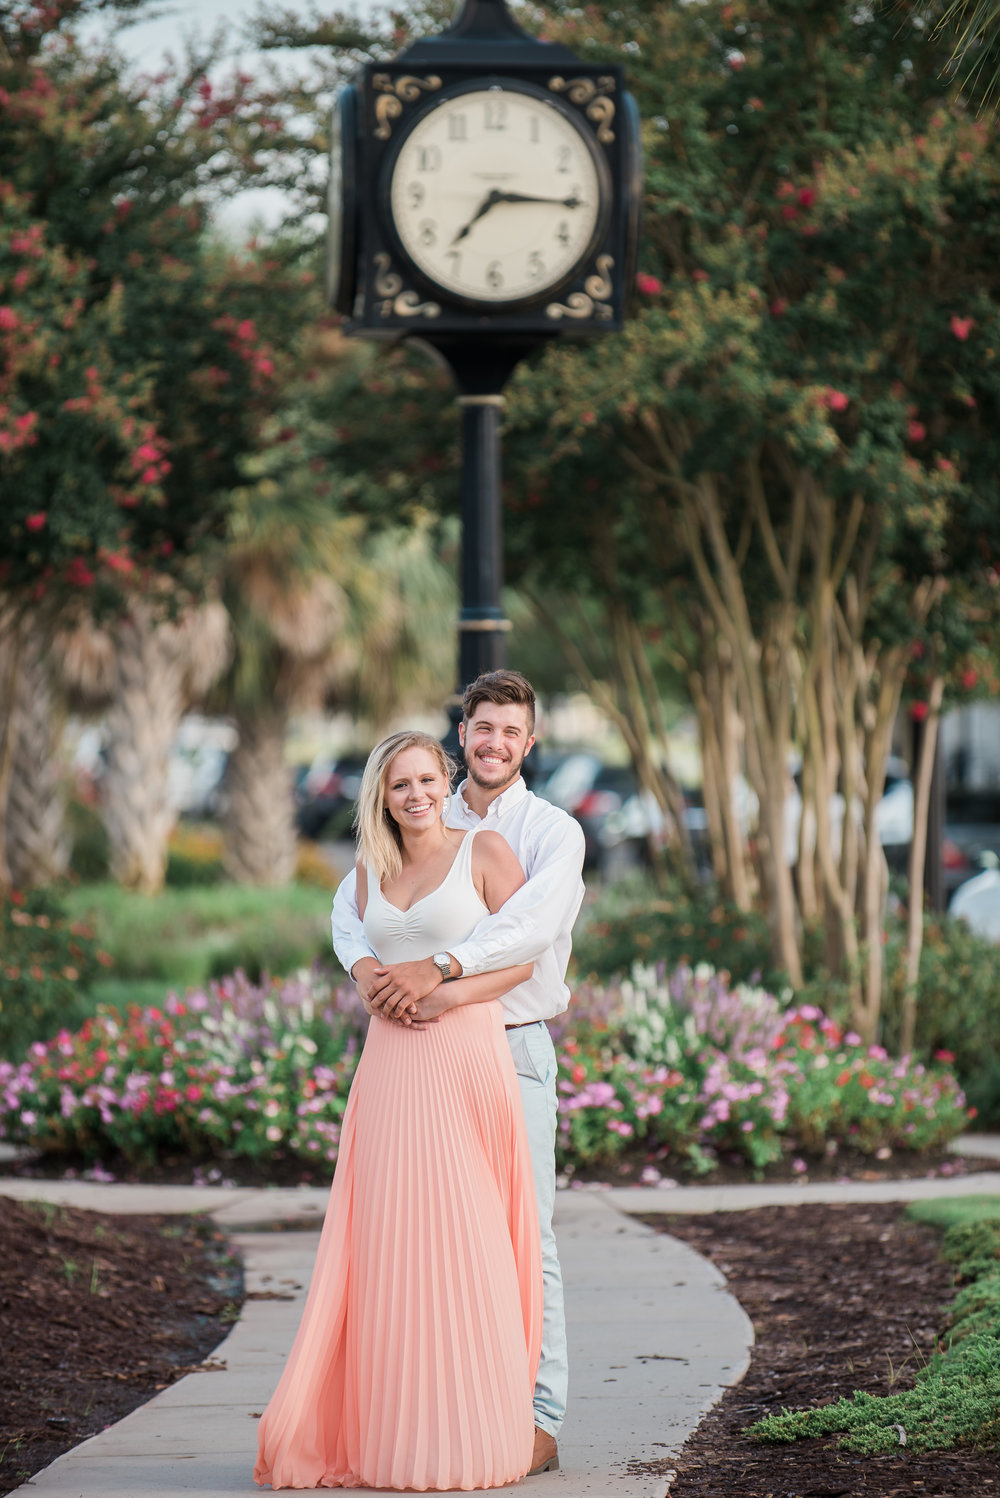 Victoria and John-Market-Commom-Huntington-Beach-State-Park-Session-48.jpg